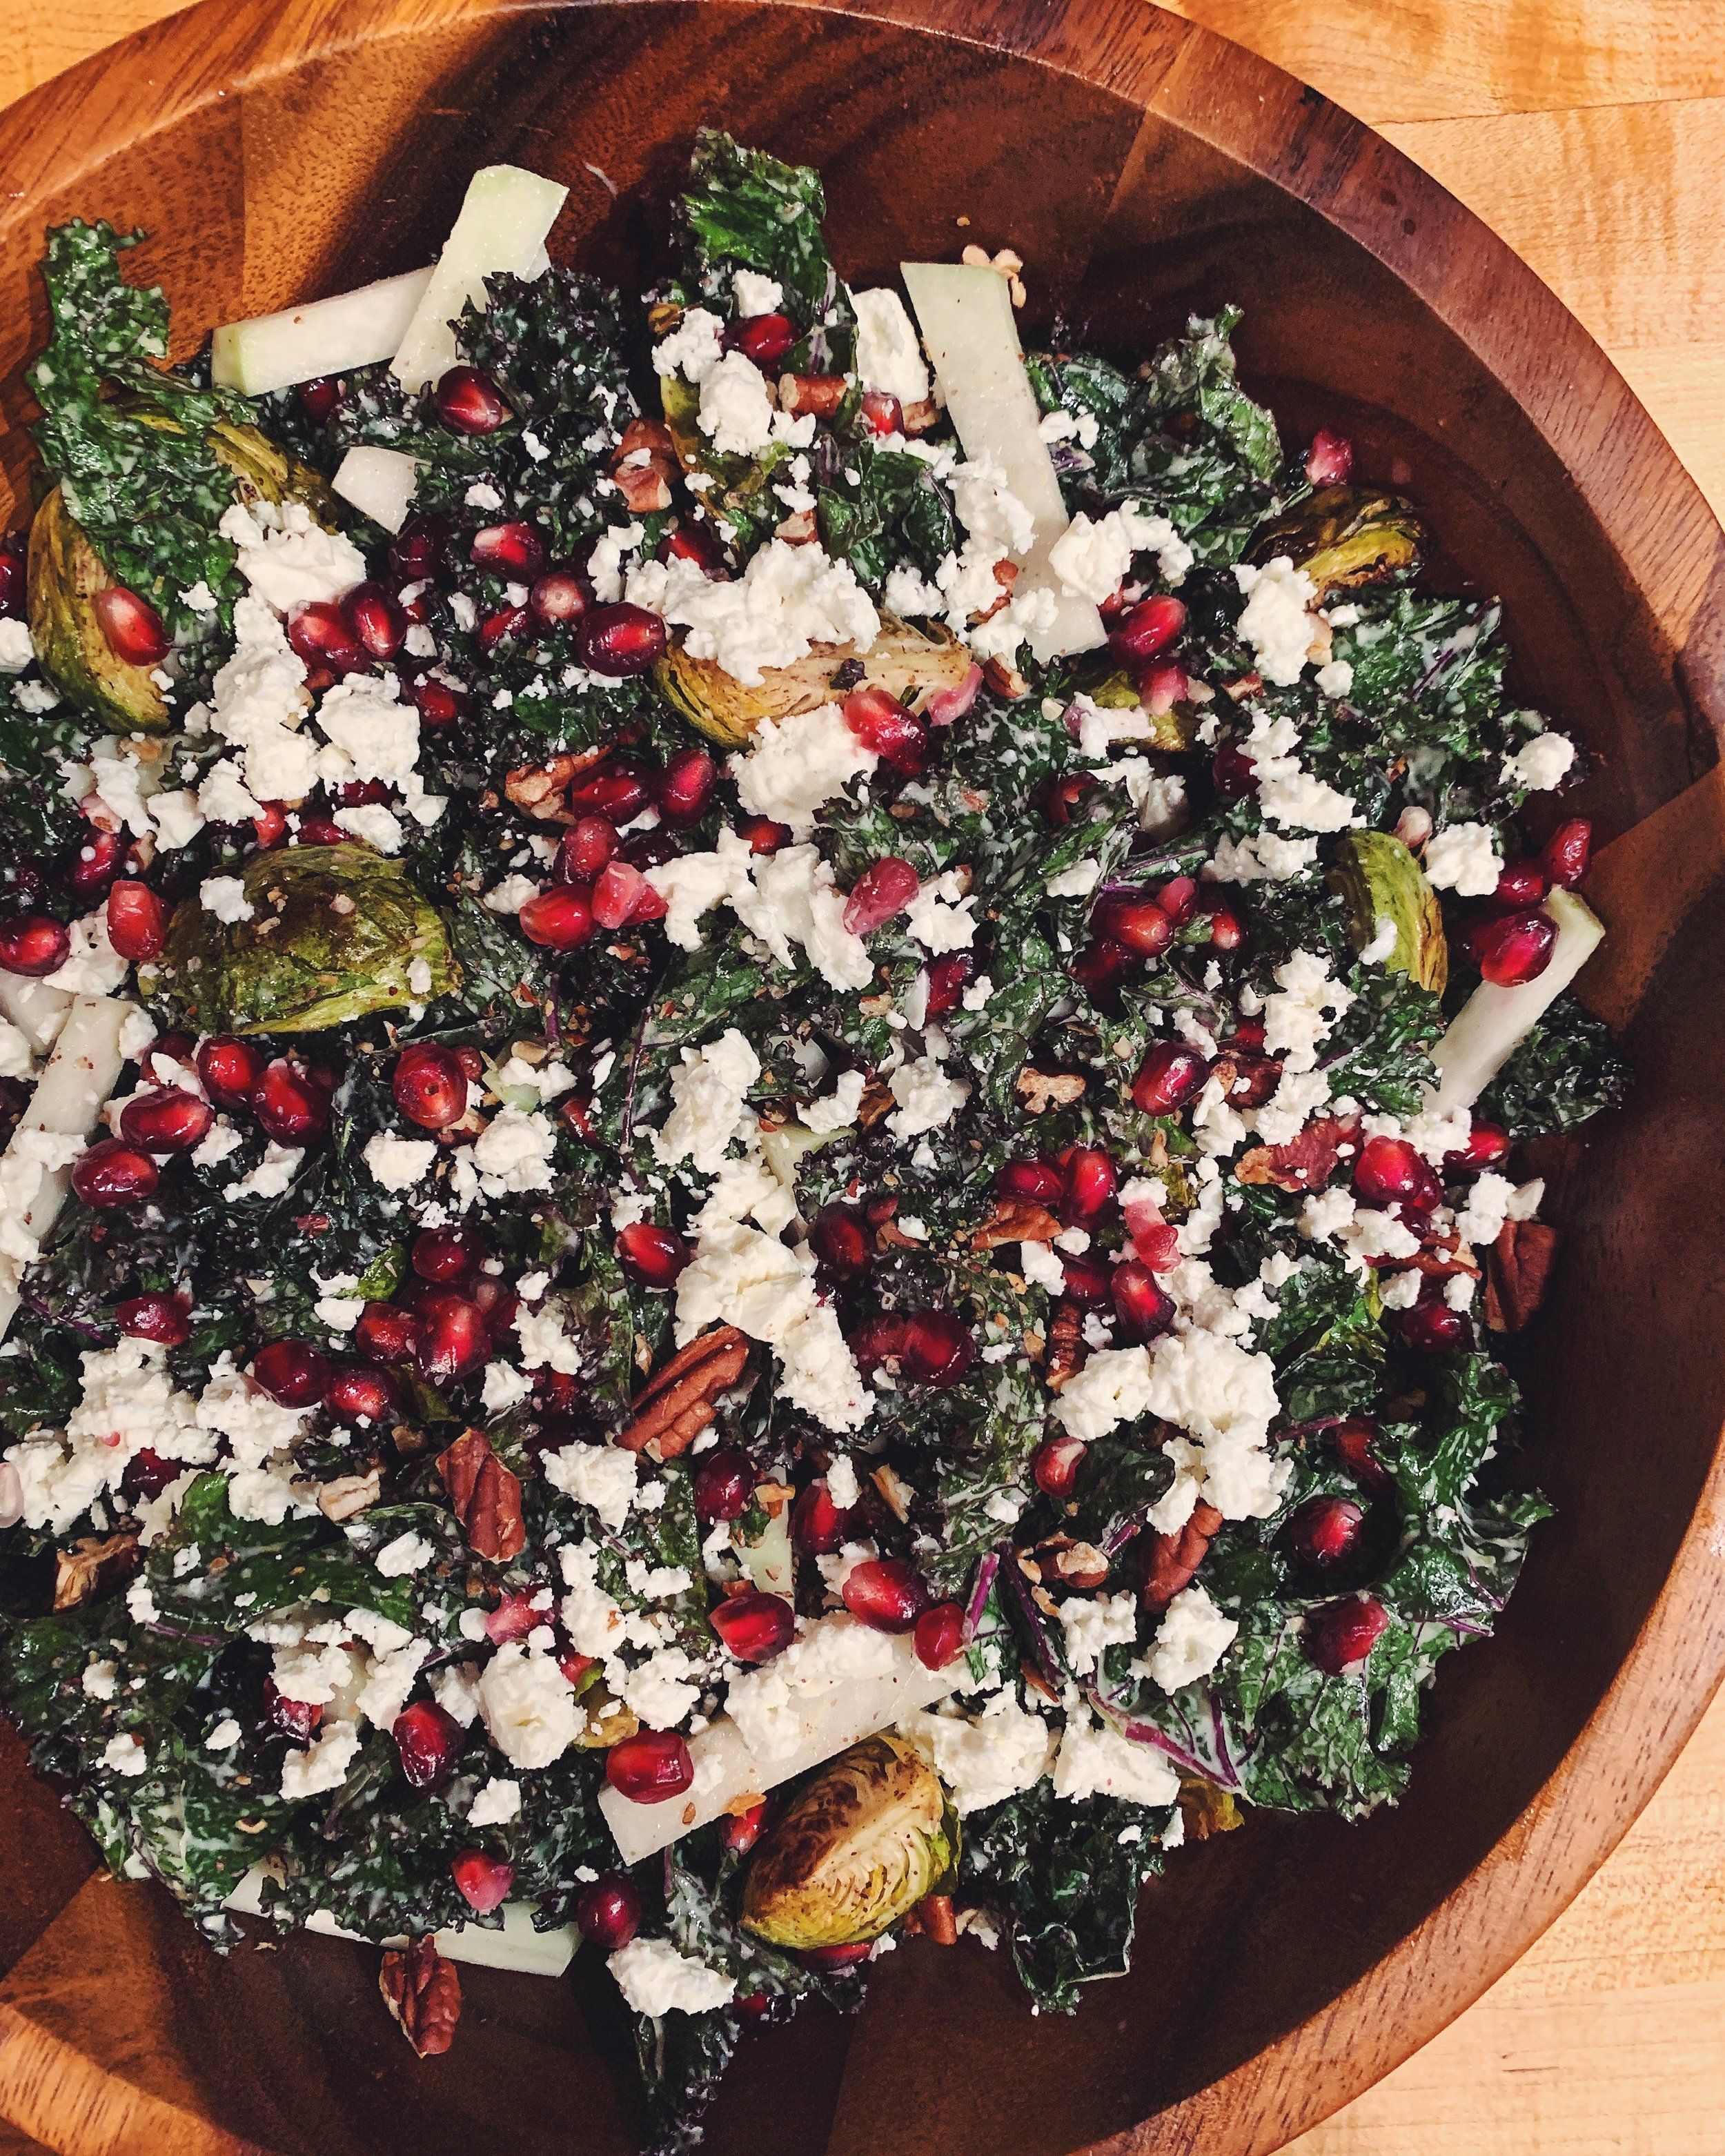 Kale Salad with Roasted Brussels Sprouts, Kohlrabi, & Pomegranates with Lemon Tahini Dressing